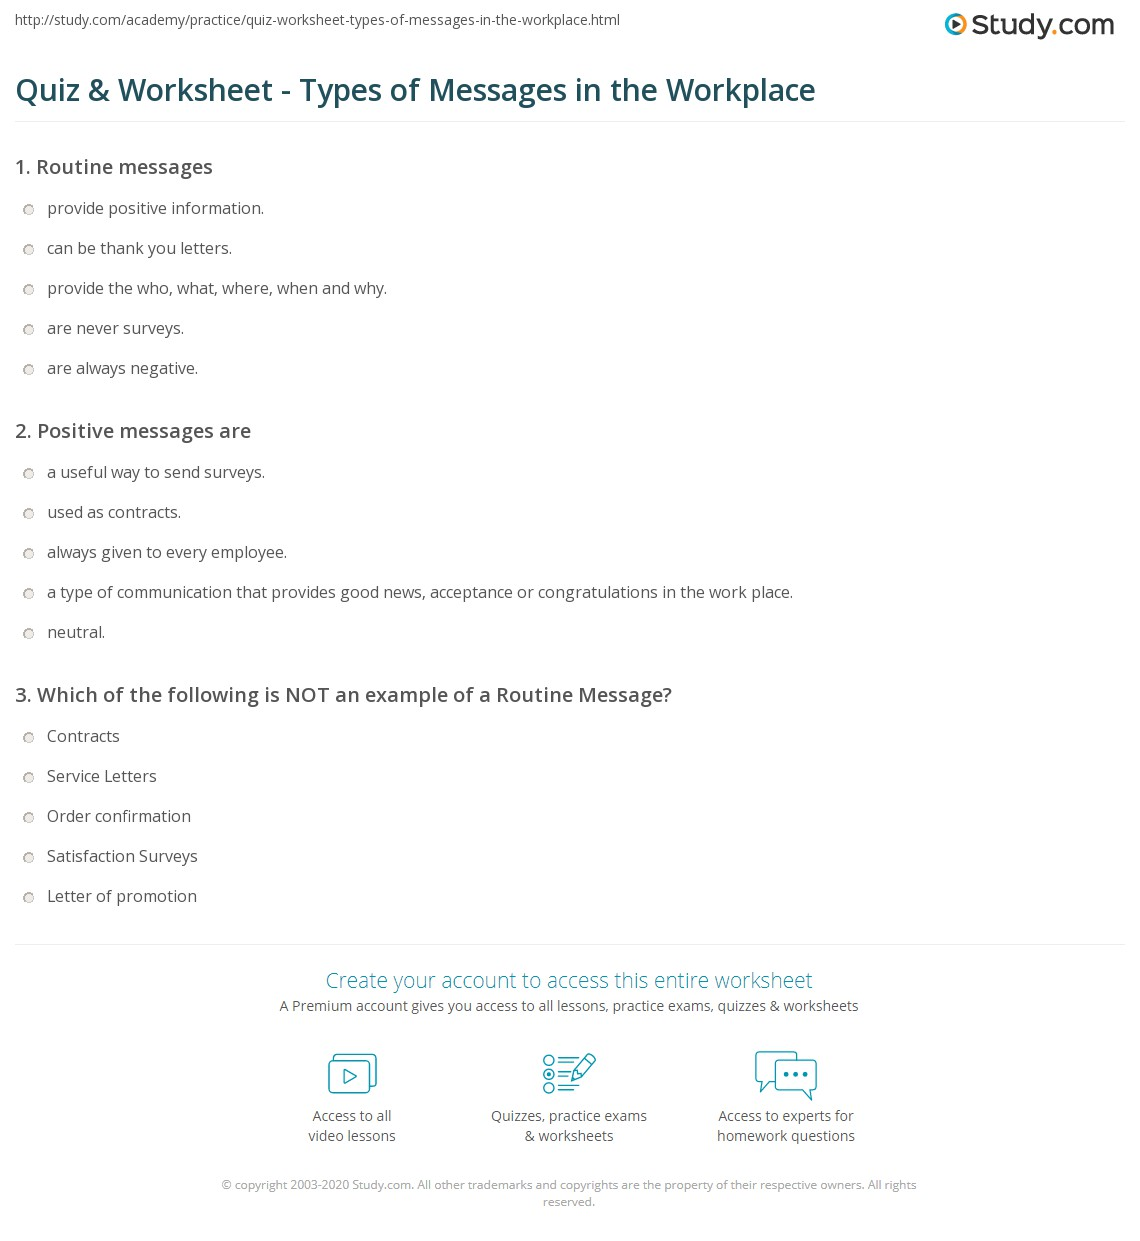 Quiz & Worksheet - Types of Messages in the Workplace | Study.com